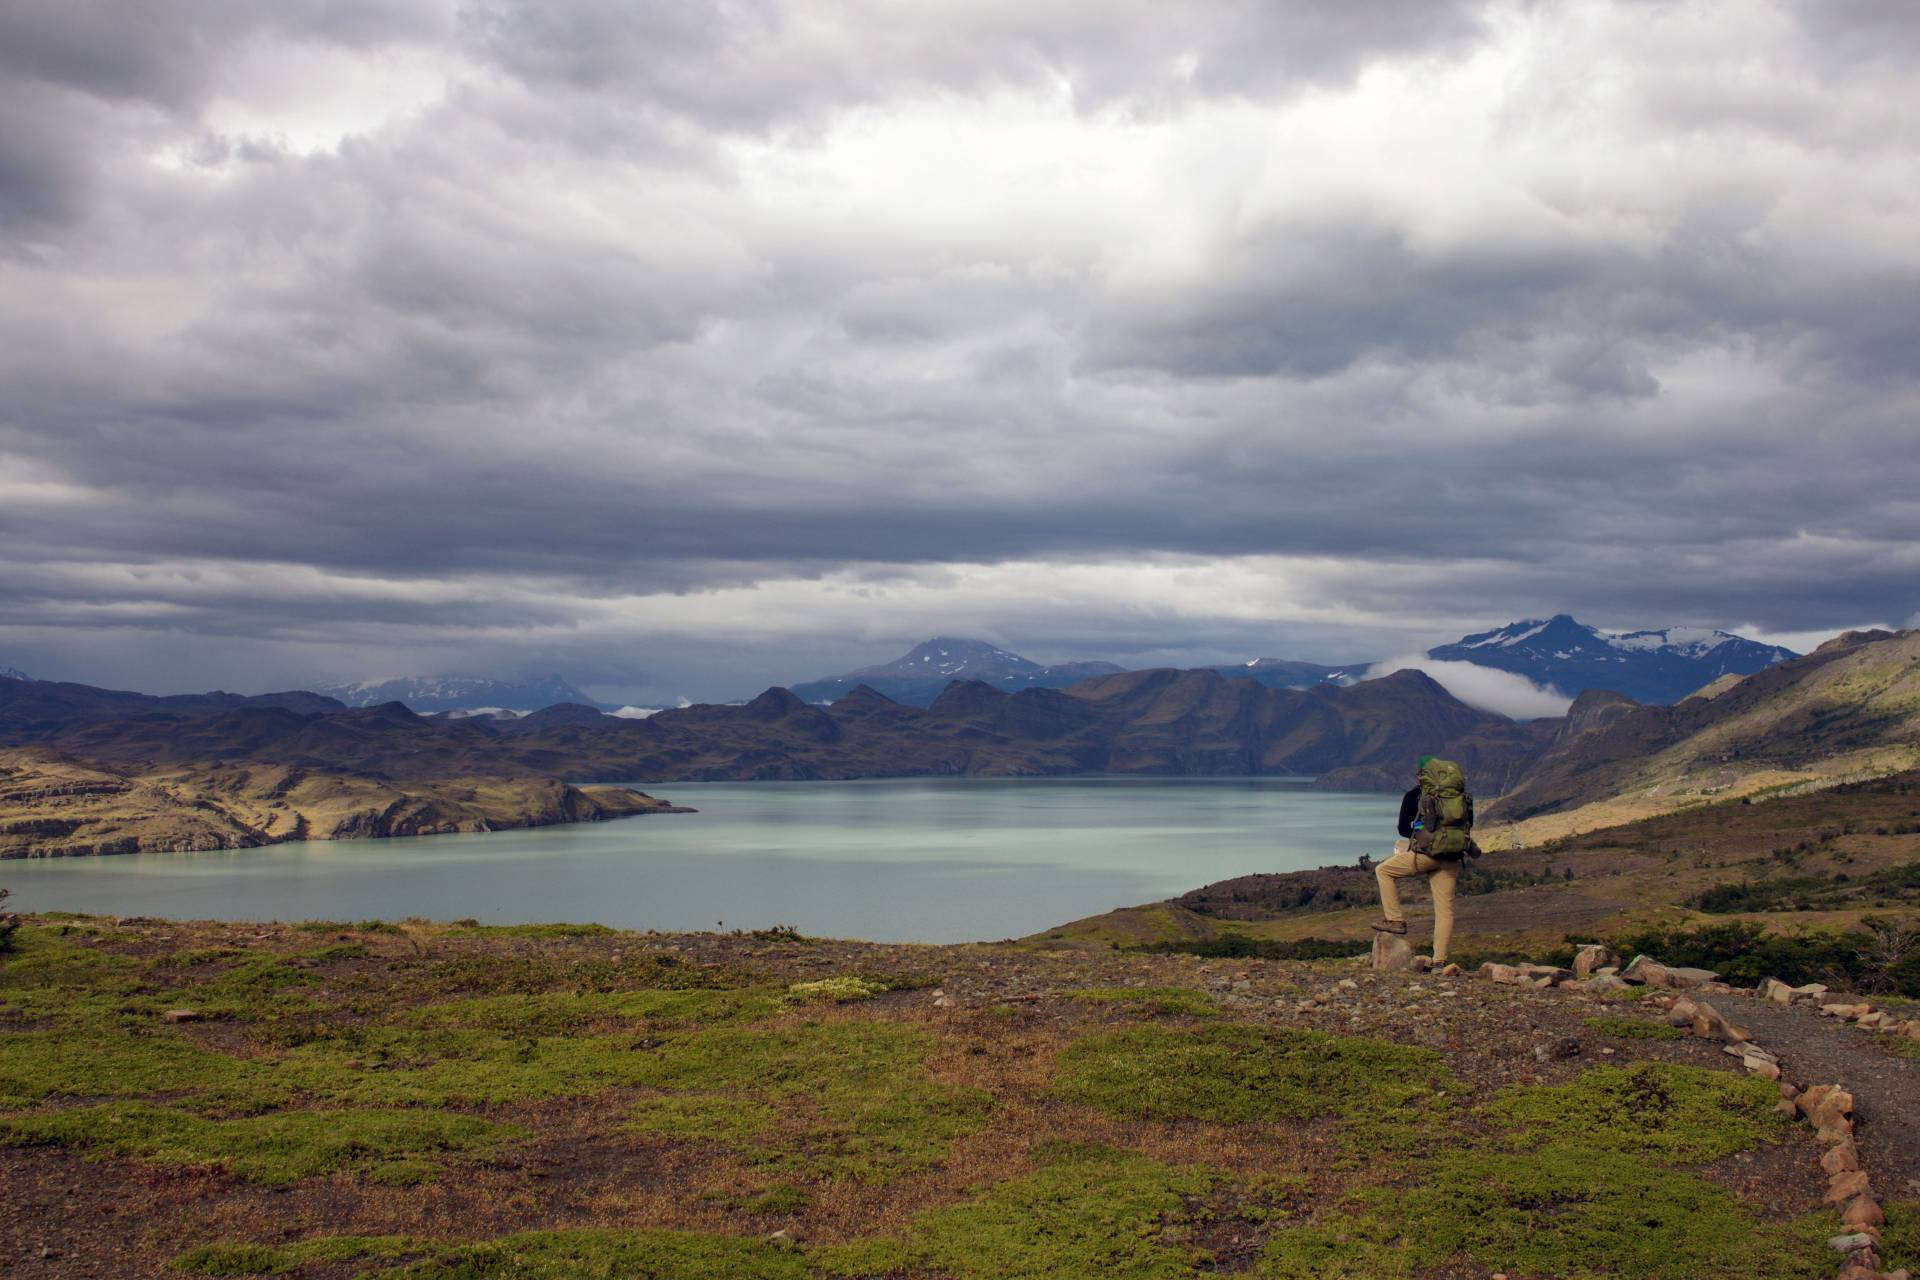 Hiking the W Trail in Chile Patagonia